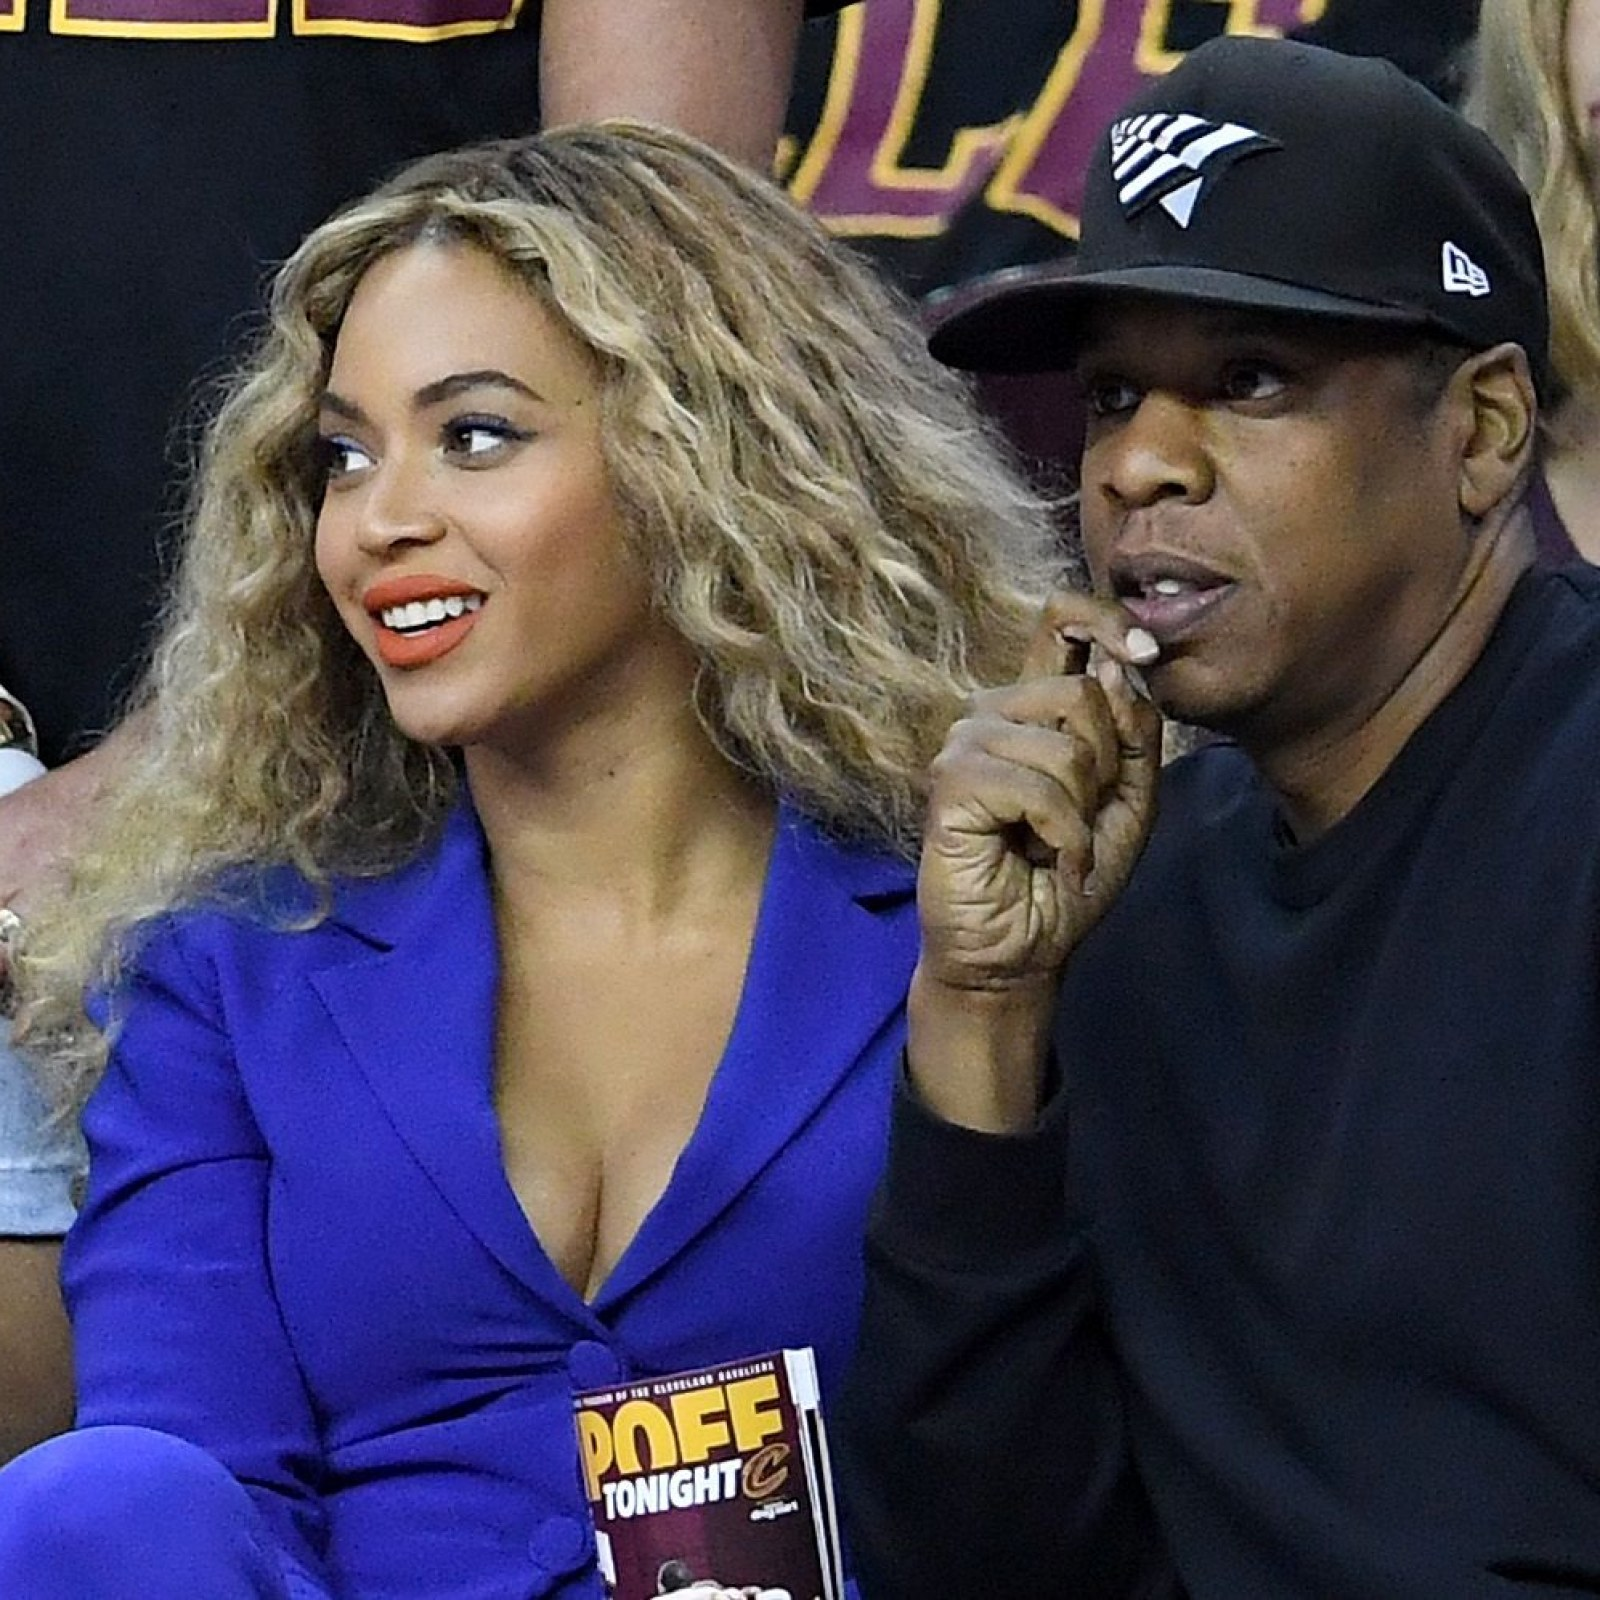 Photo Leak Of Beyonce And Jay Z S Children Can You Go To Jail For Sharing Photos Of Celebrity Kids Without Consent